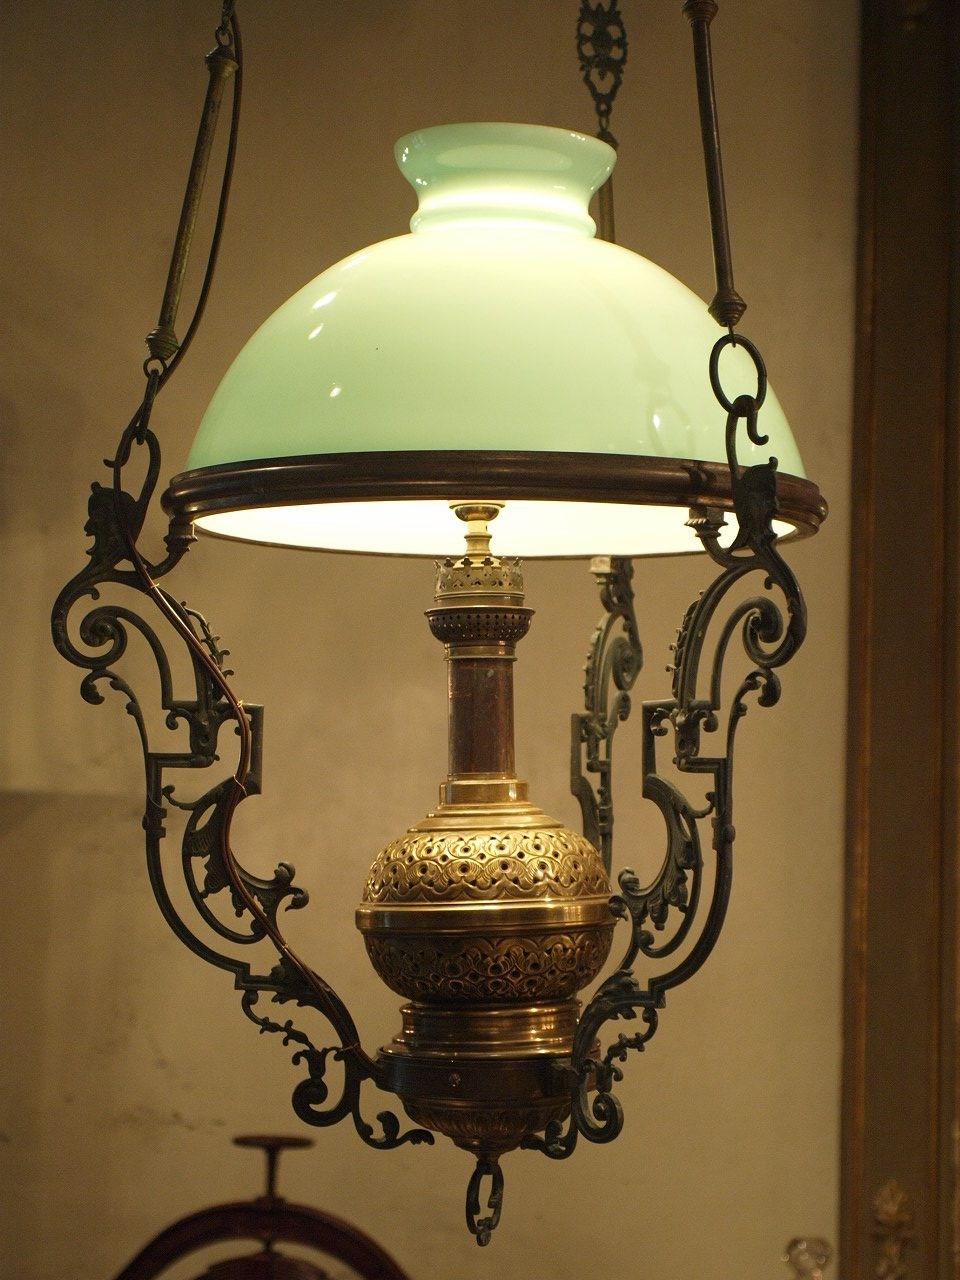 Lucullus Culinary Antiques Art And Objects Lamp Antique Lighting Candle Night